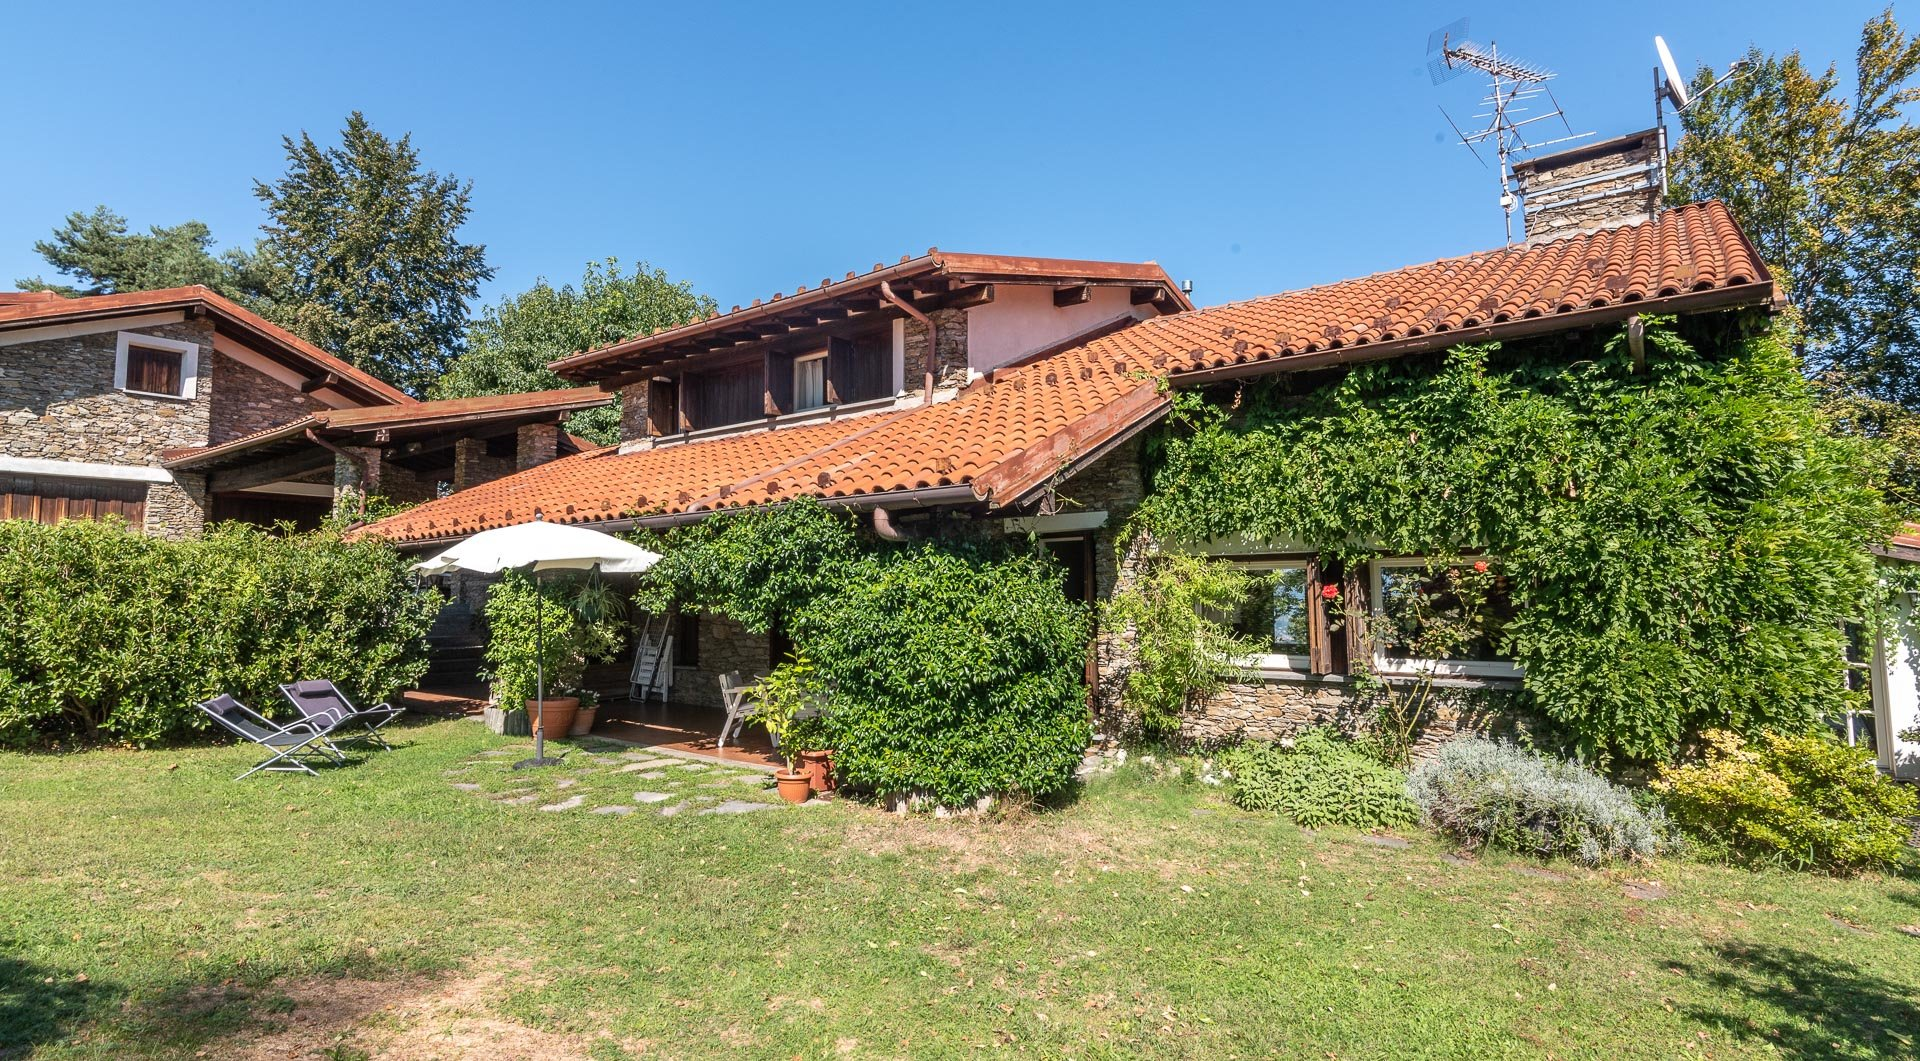 Villa with swimming pool for sale in Gignese - villa